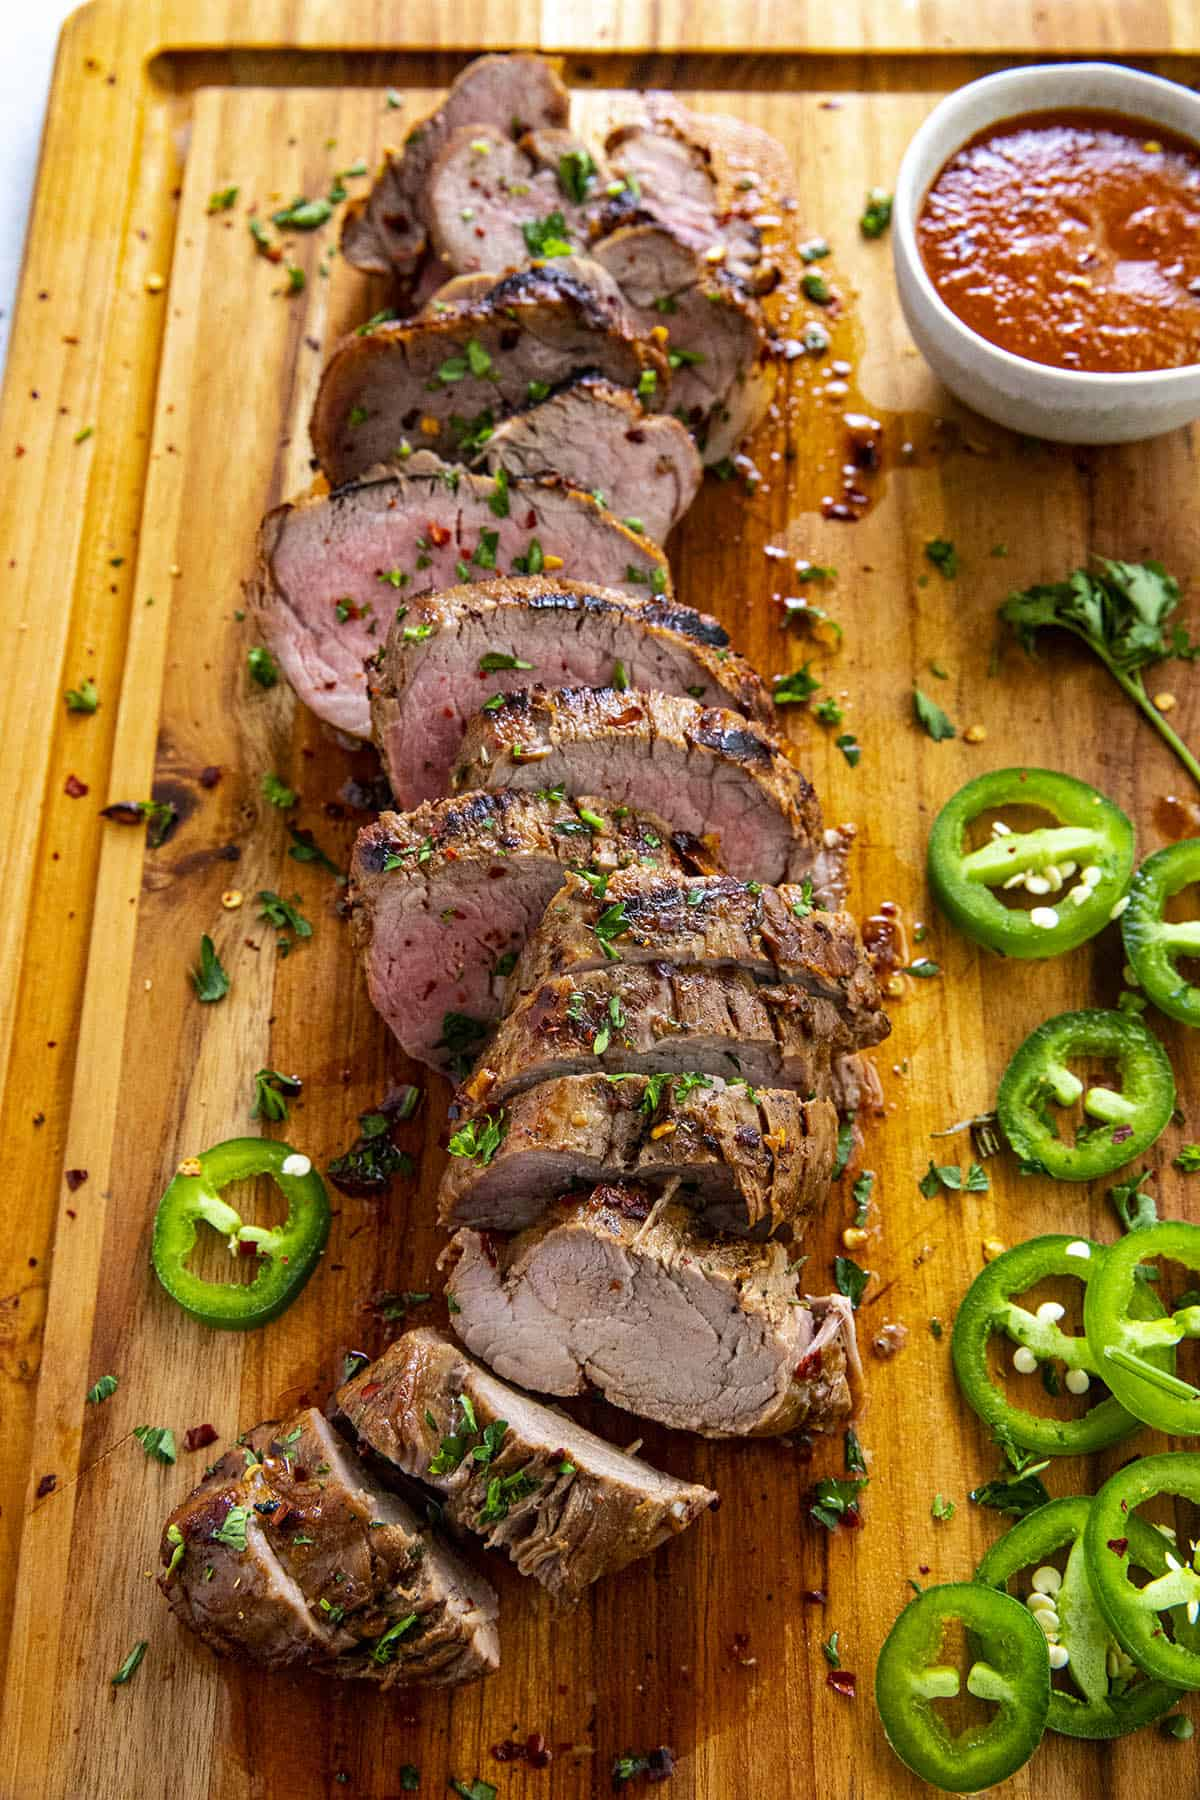 Sliced and grilled marinated pork tenderloin with bbq sauce, ready to serve